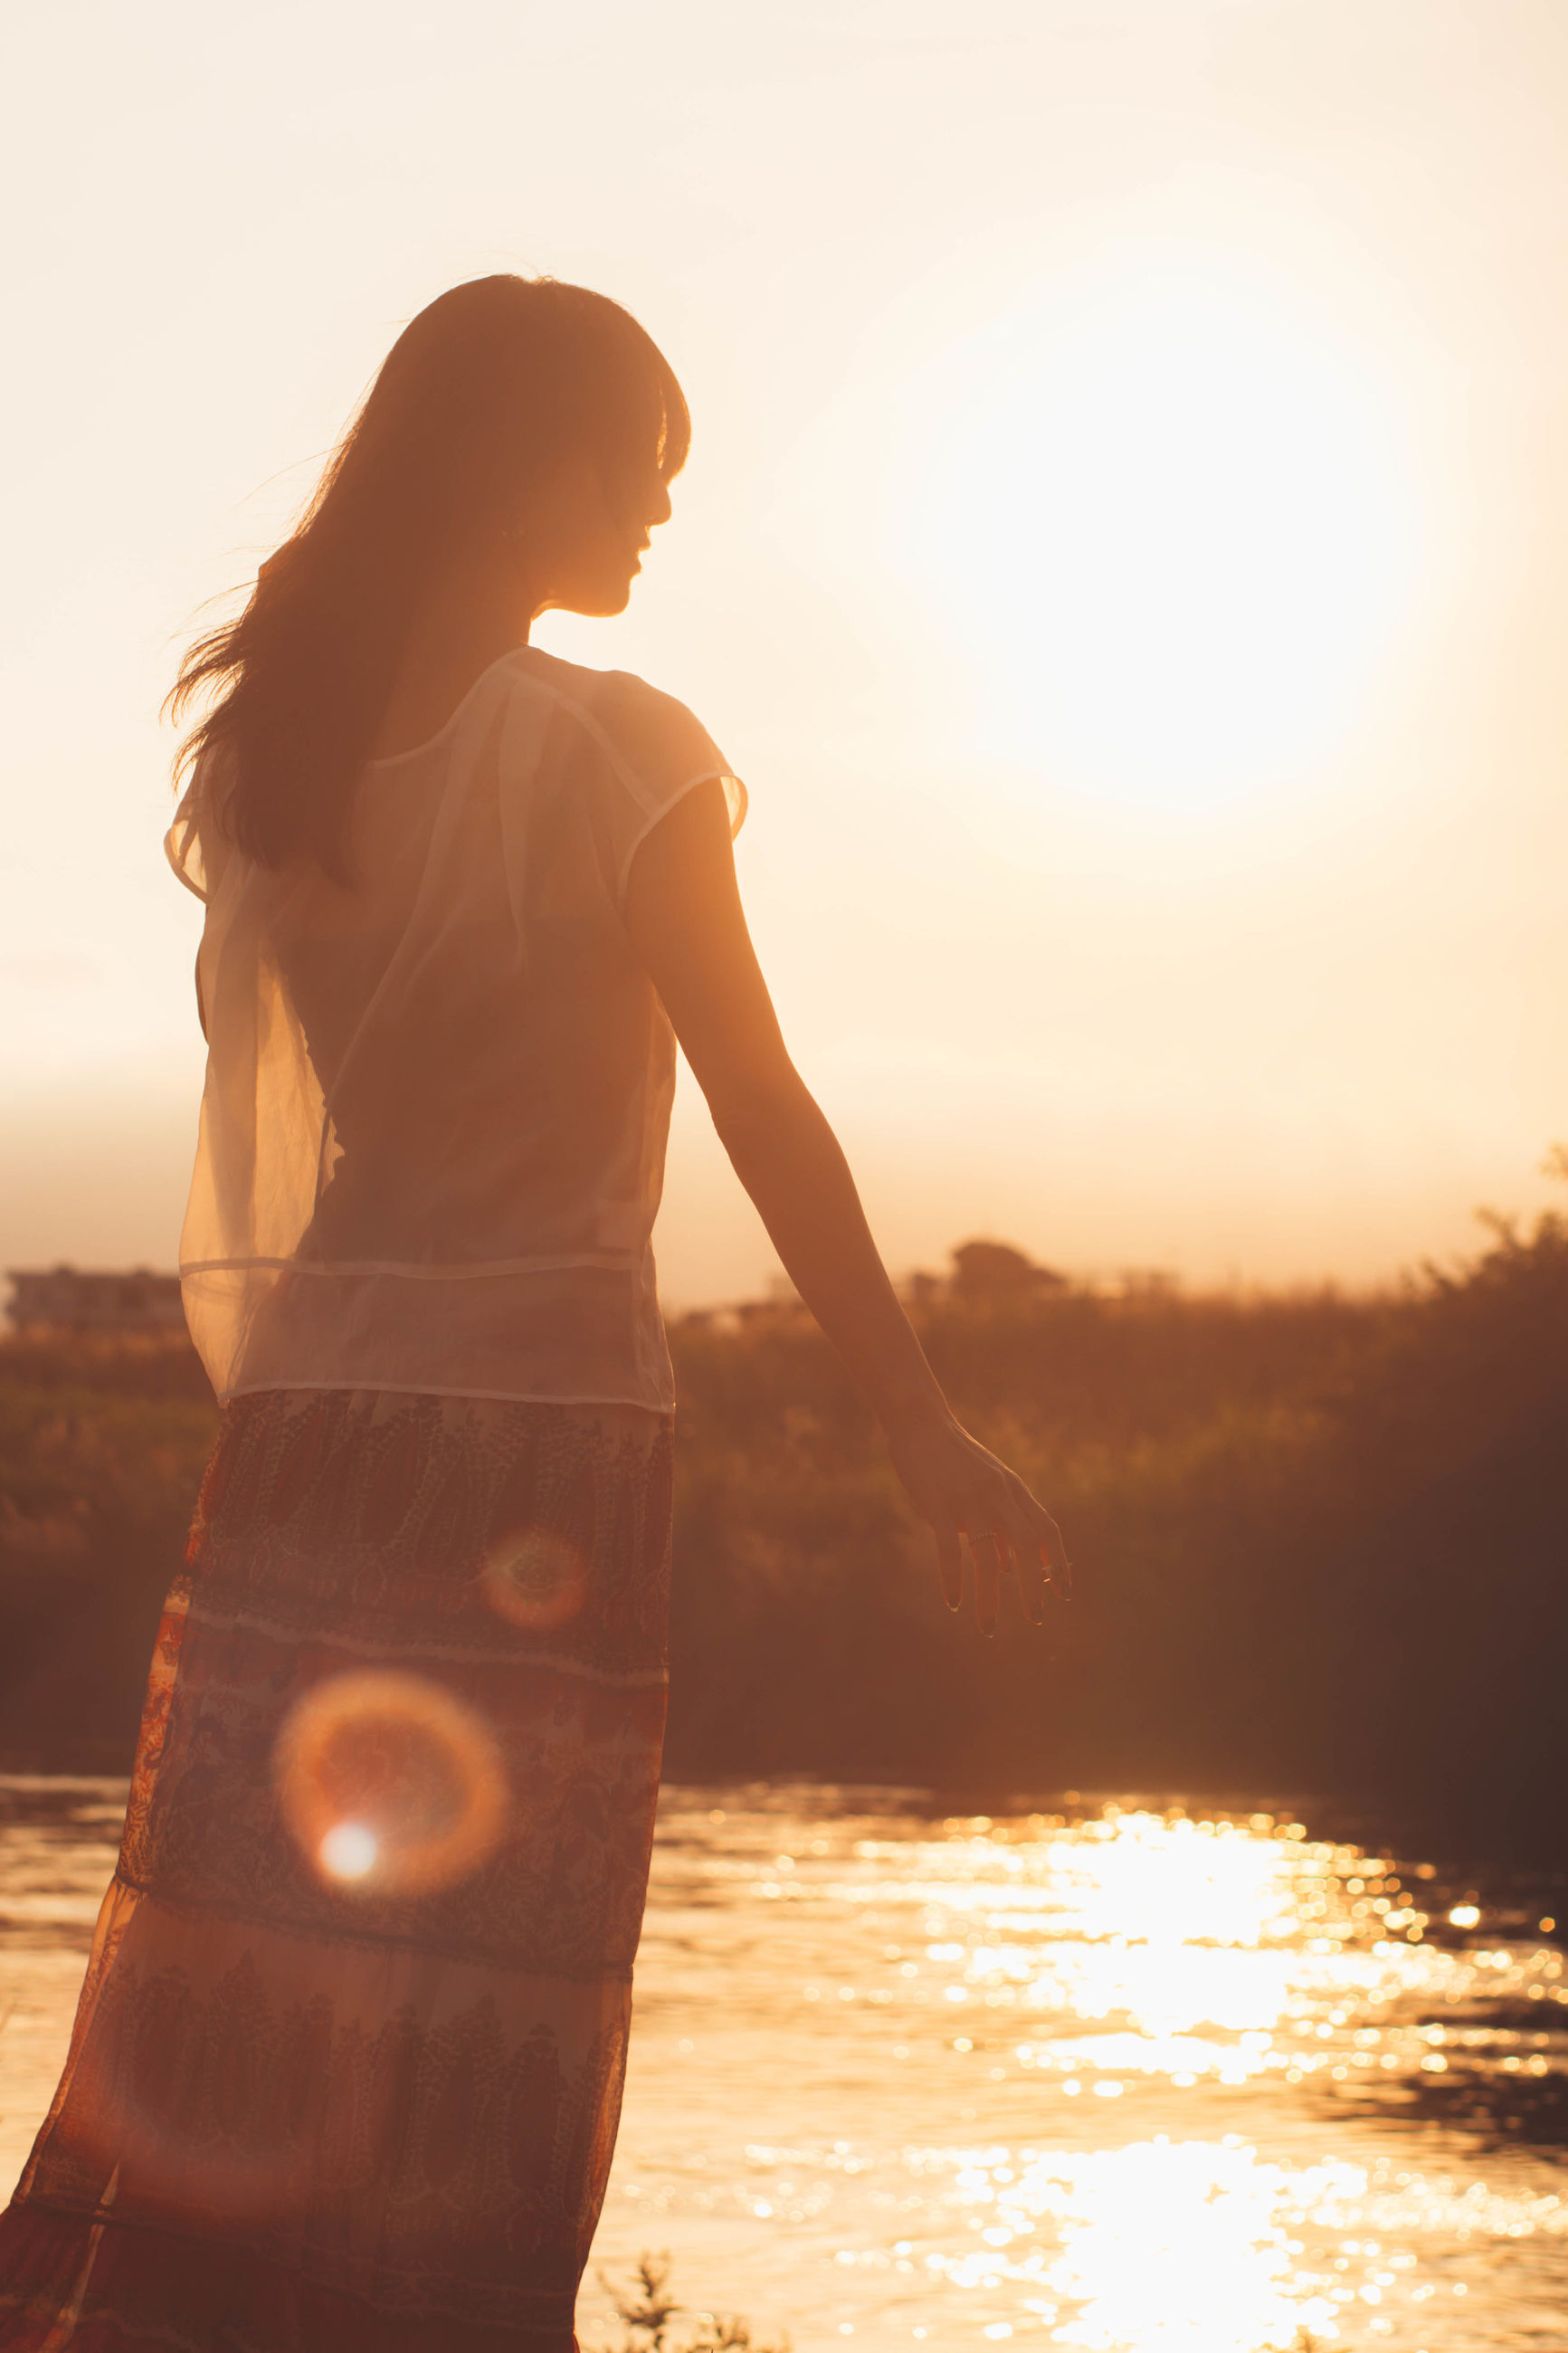 sunset, real people, one person, water, sun, leisure activity, nature, standing, lifestyles, outdoors, beauty in nature, sky, rear view, sunlight, women, childhood, scenics, sea, full length, clear sky, tree, day, young adult, people